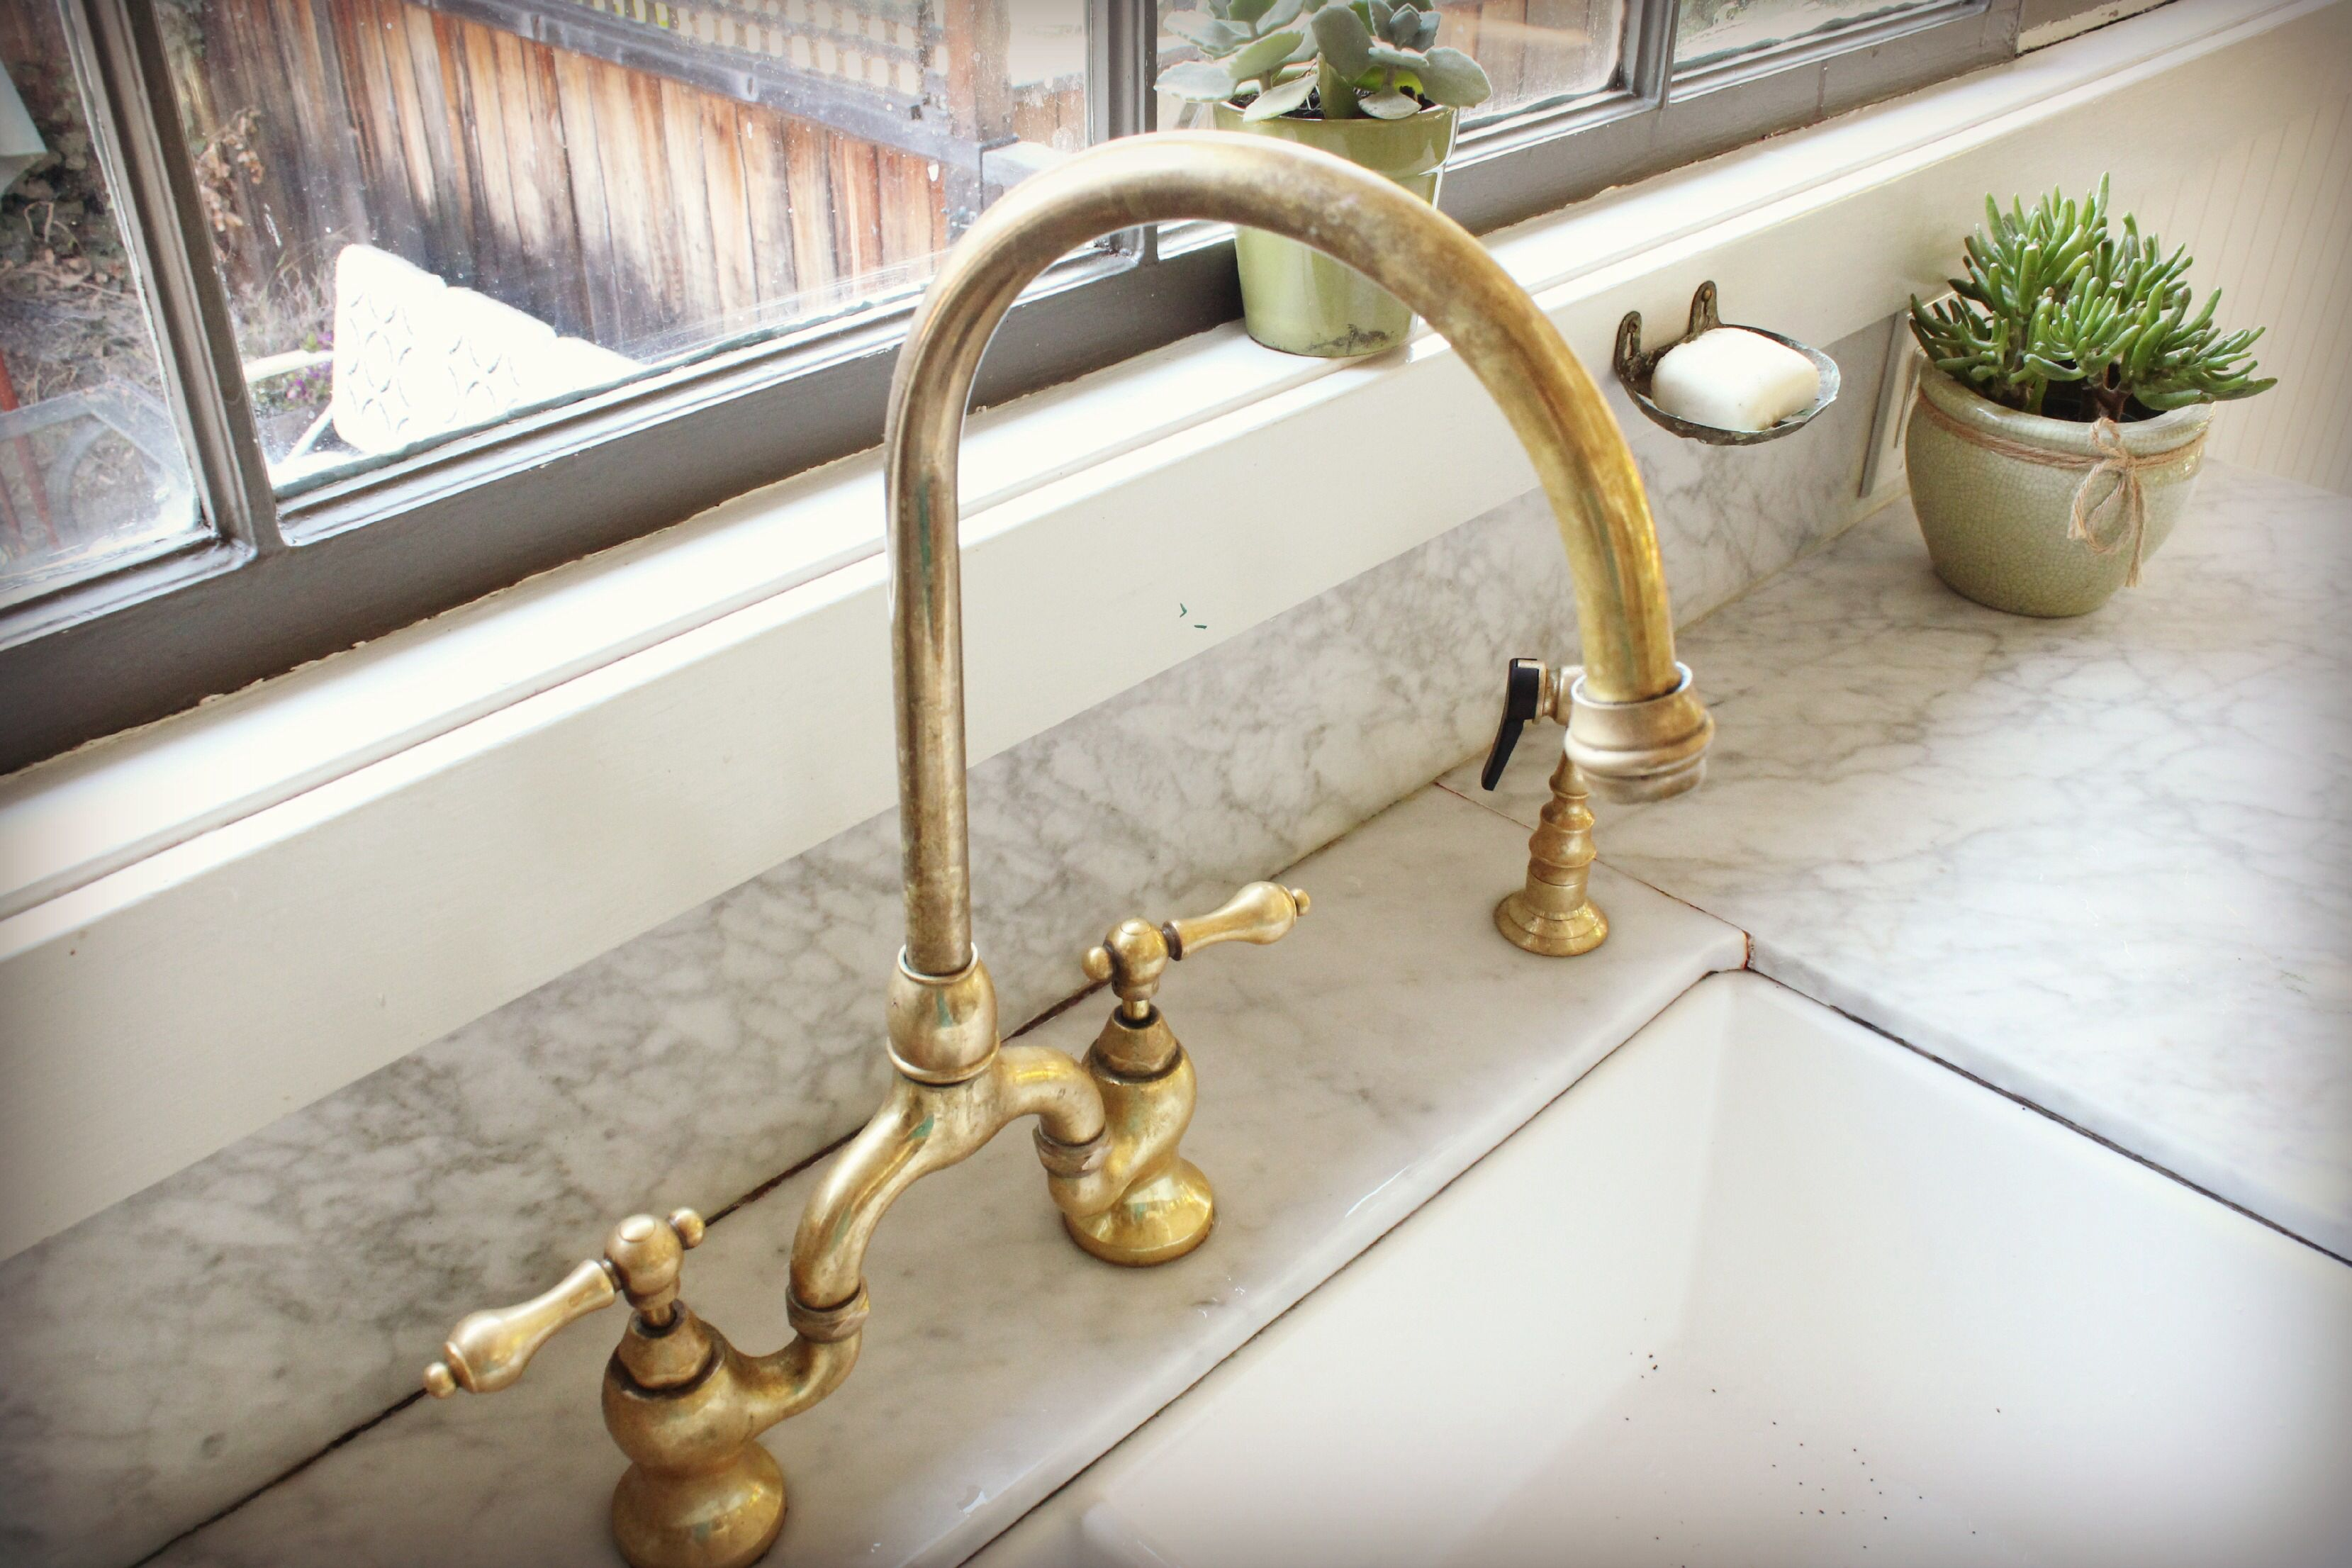 Küchenarmatur Real Unlacquered Brass Bridge Faucet Fixtures In 2019 Brass Kitchen